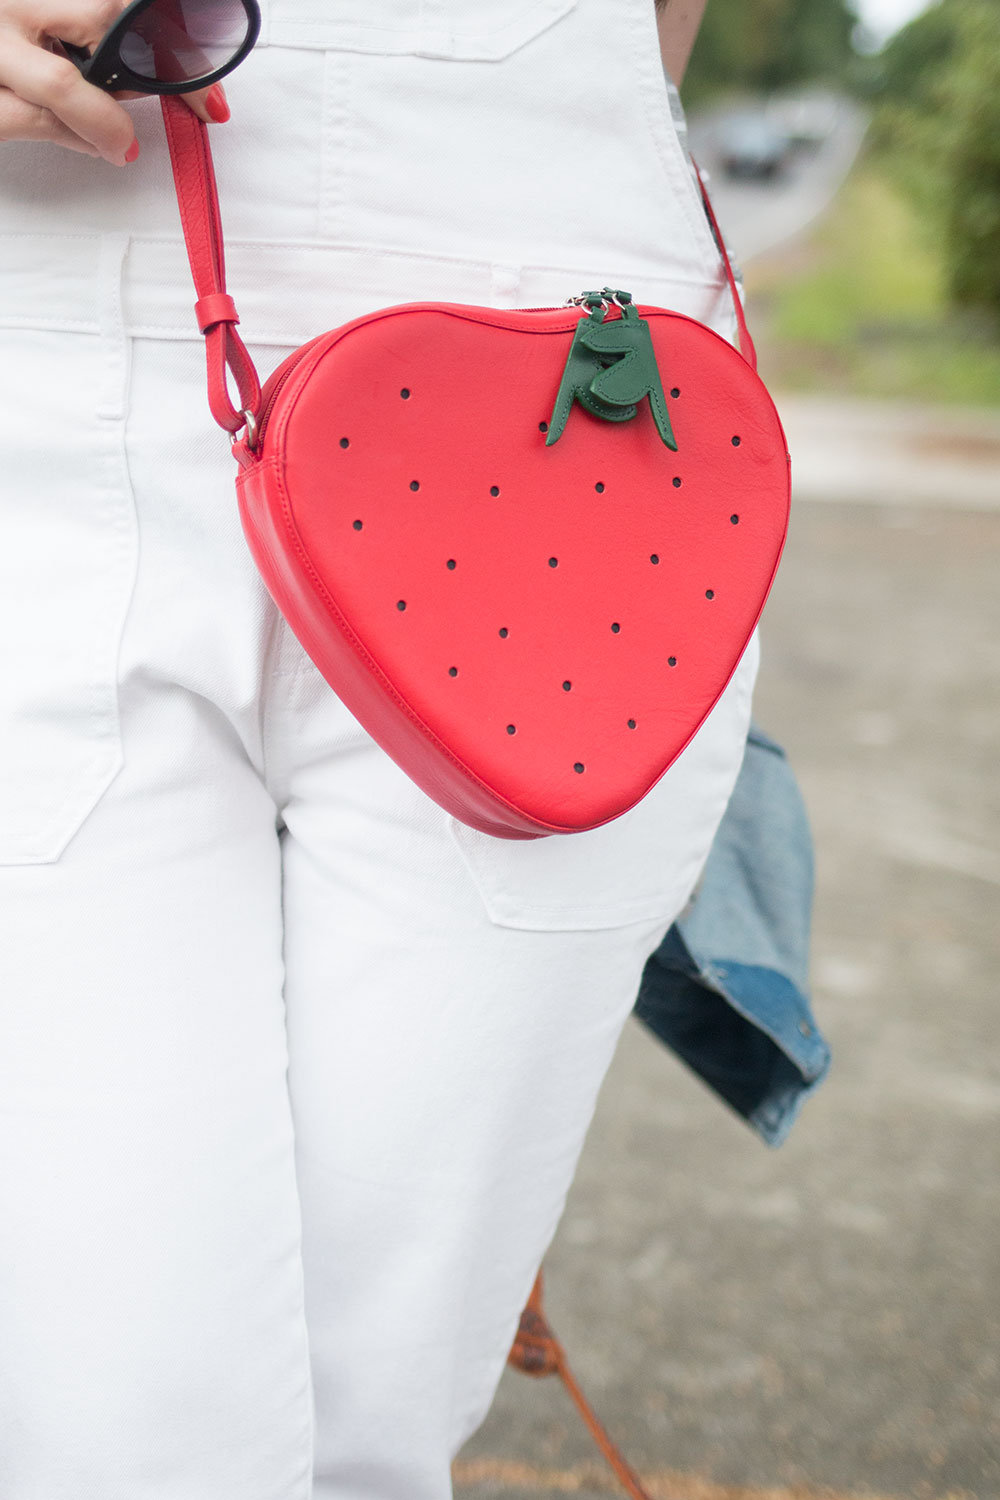 MyWalit Strawberry Bag Purse // Hello Rigby Seattle Fashion Blog